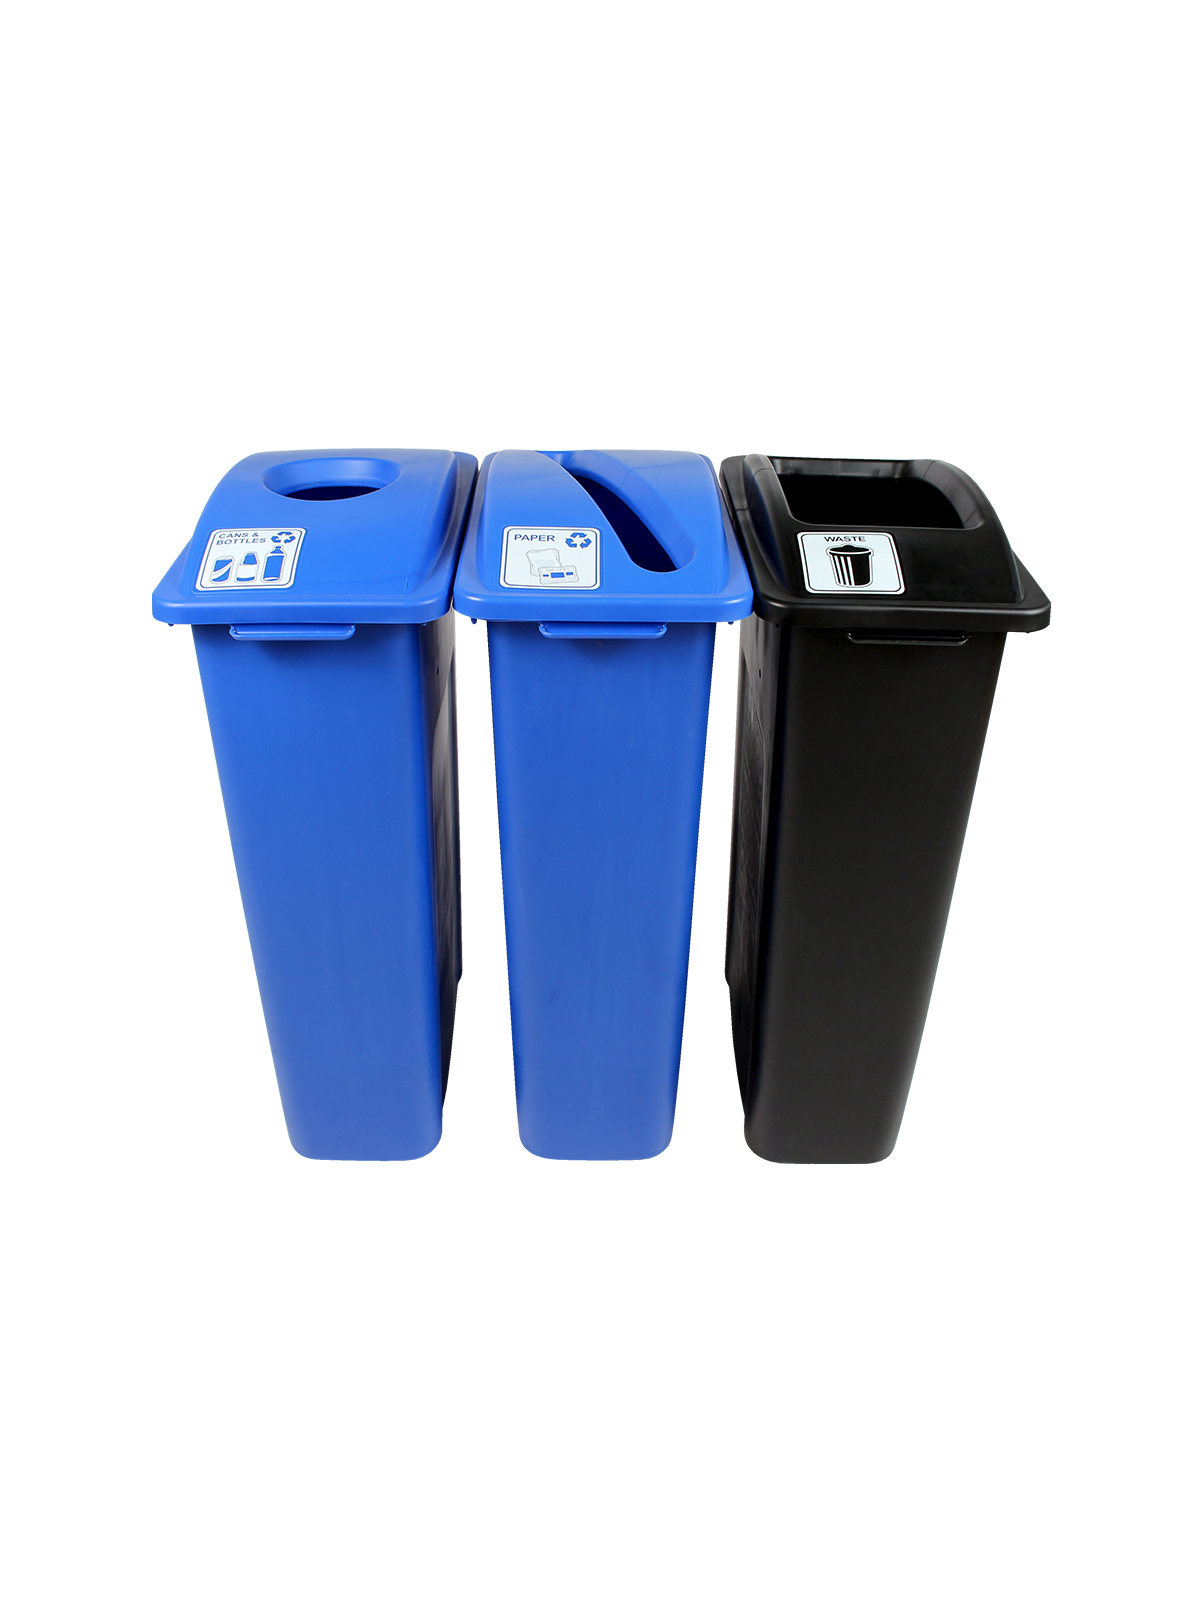 WASTE WATCHER - Triple - Cans & Bottles-Paper-Waste - Circle-Slot-Full - Blue-Blue-Black